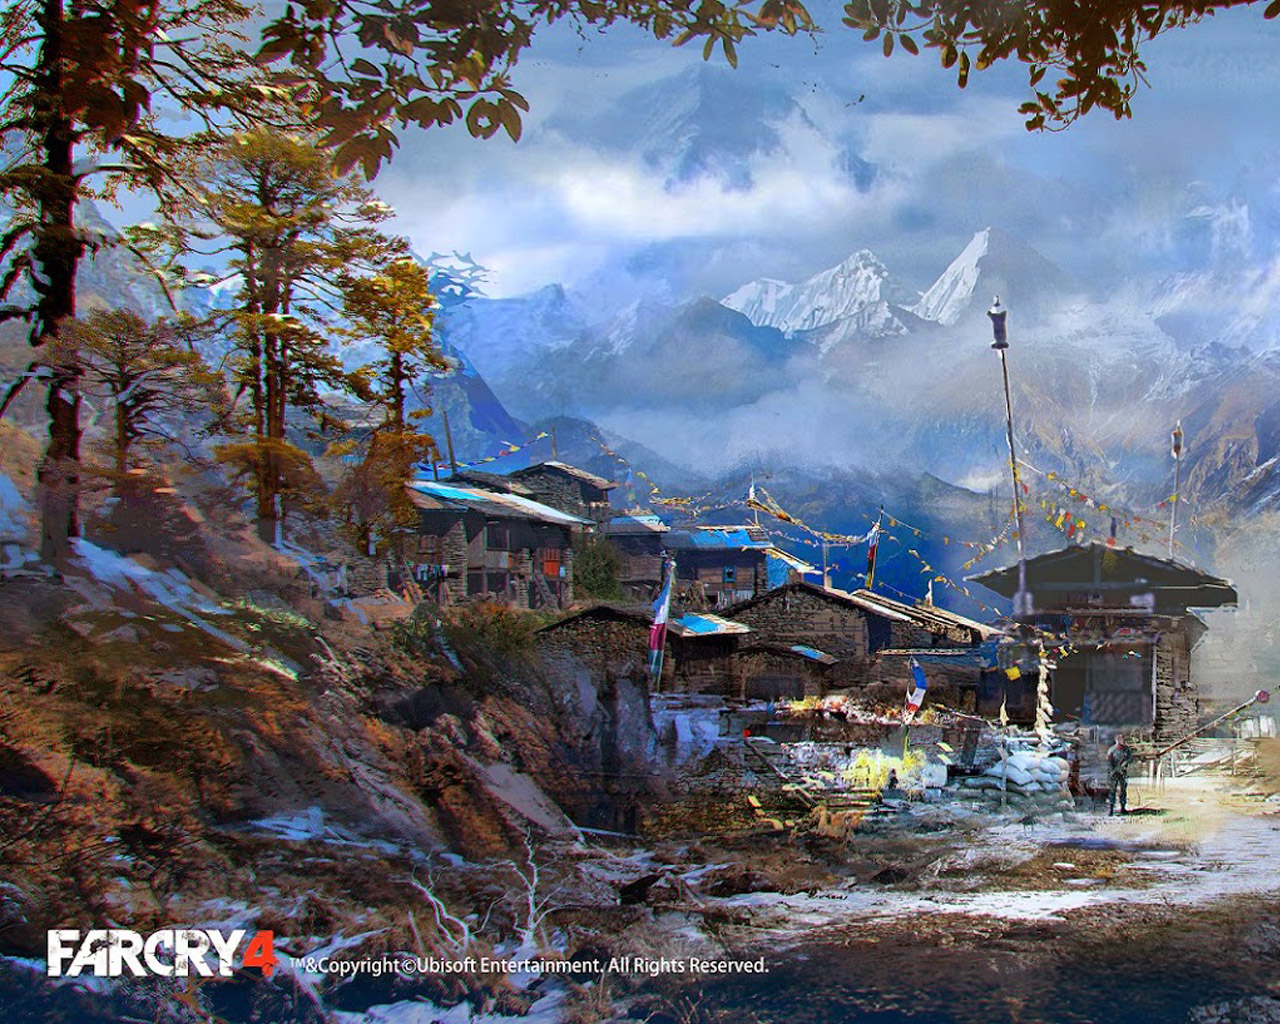 Far Cry 4 Wallpaper in 1280x1024